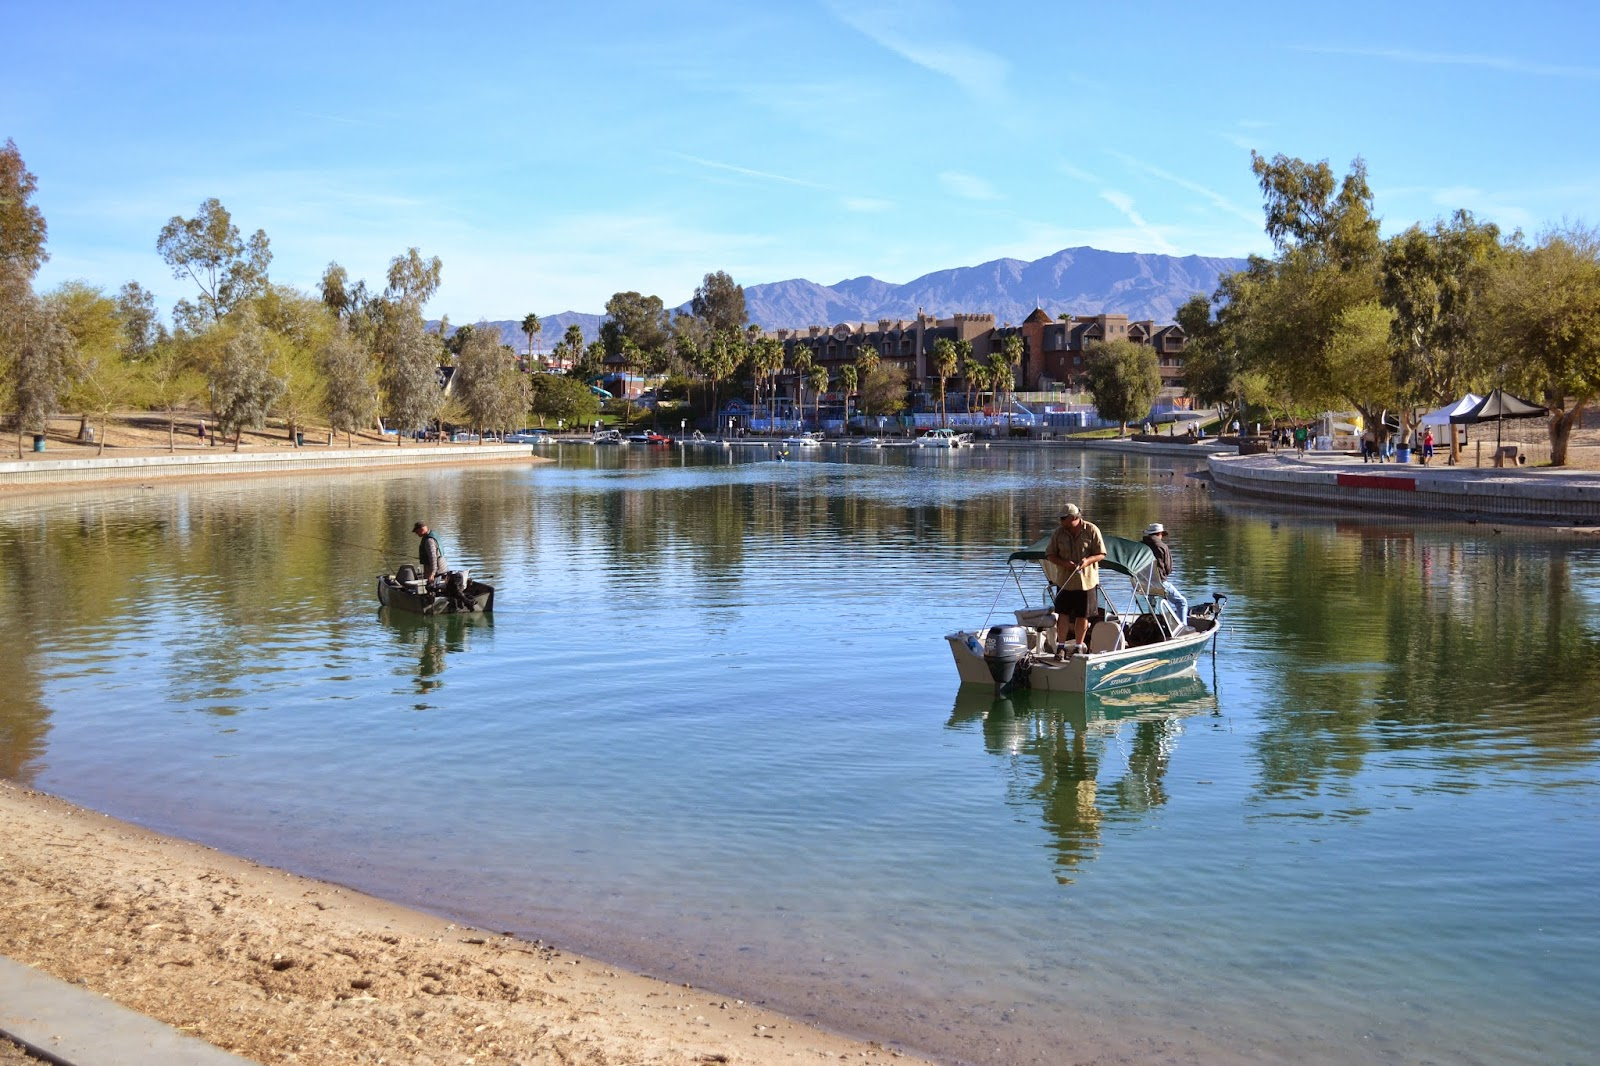 lake havasu city latin singles Grand canyon travel deals including sightseeing grand canyon from los angeles tours, discounted day trips and more find a from los angeles tour of.